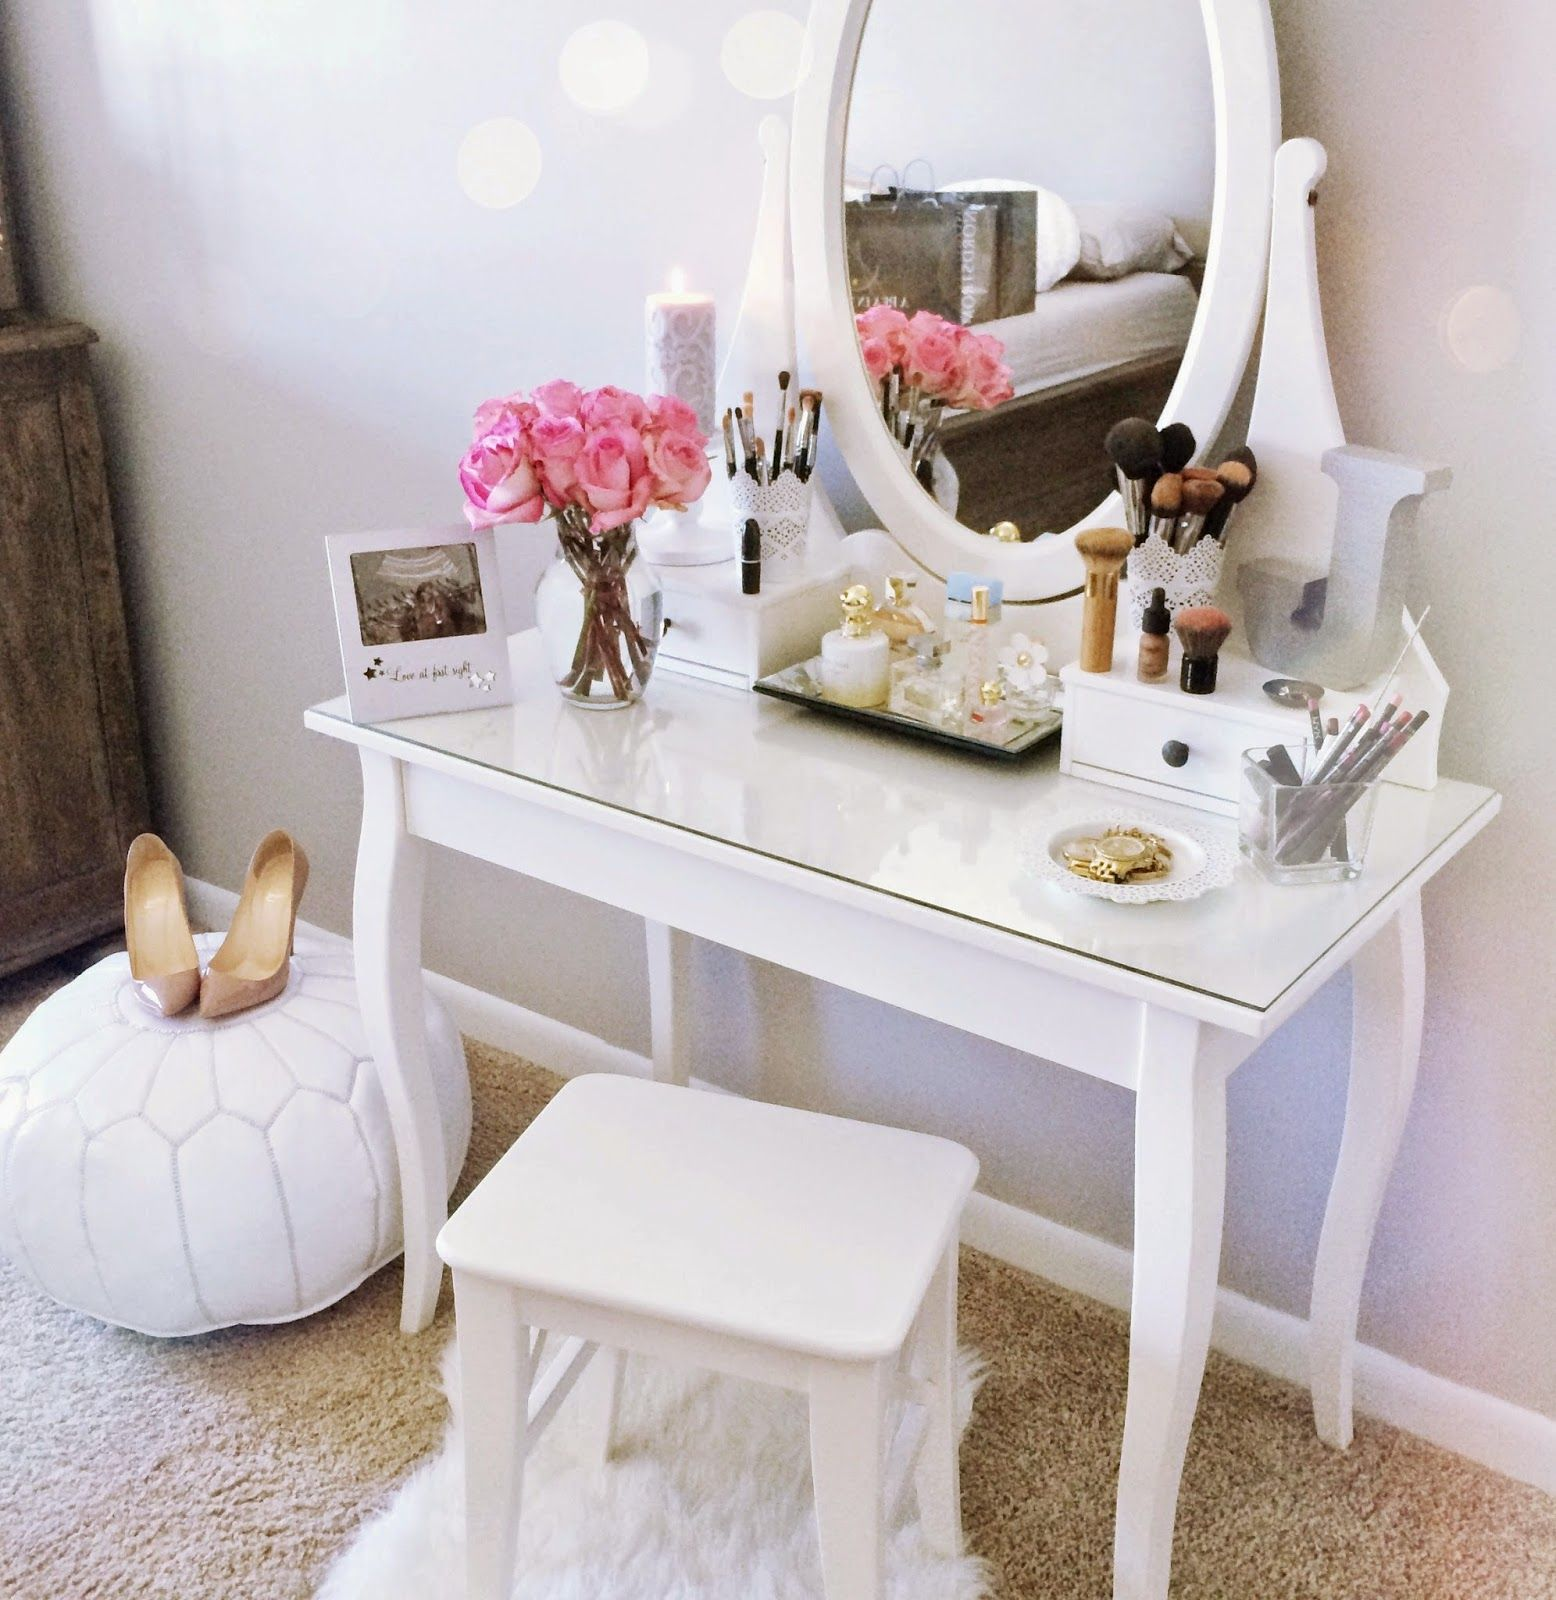 My Vanity And Makeup Favorites Coiffeuses Deco Chambre